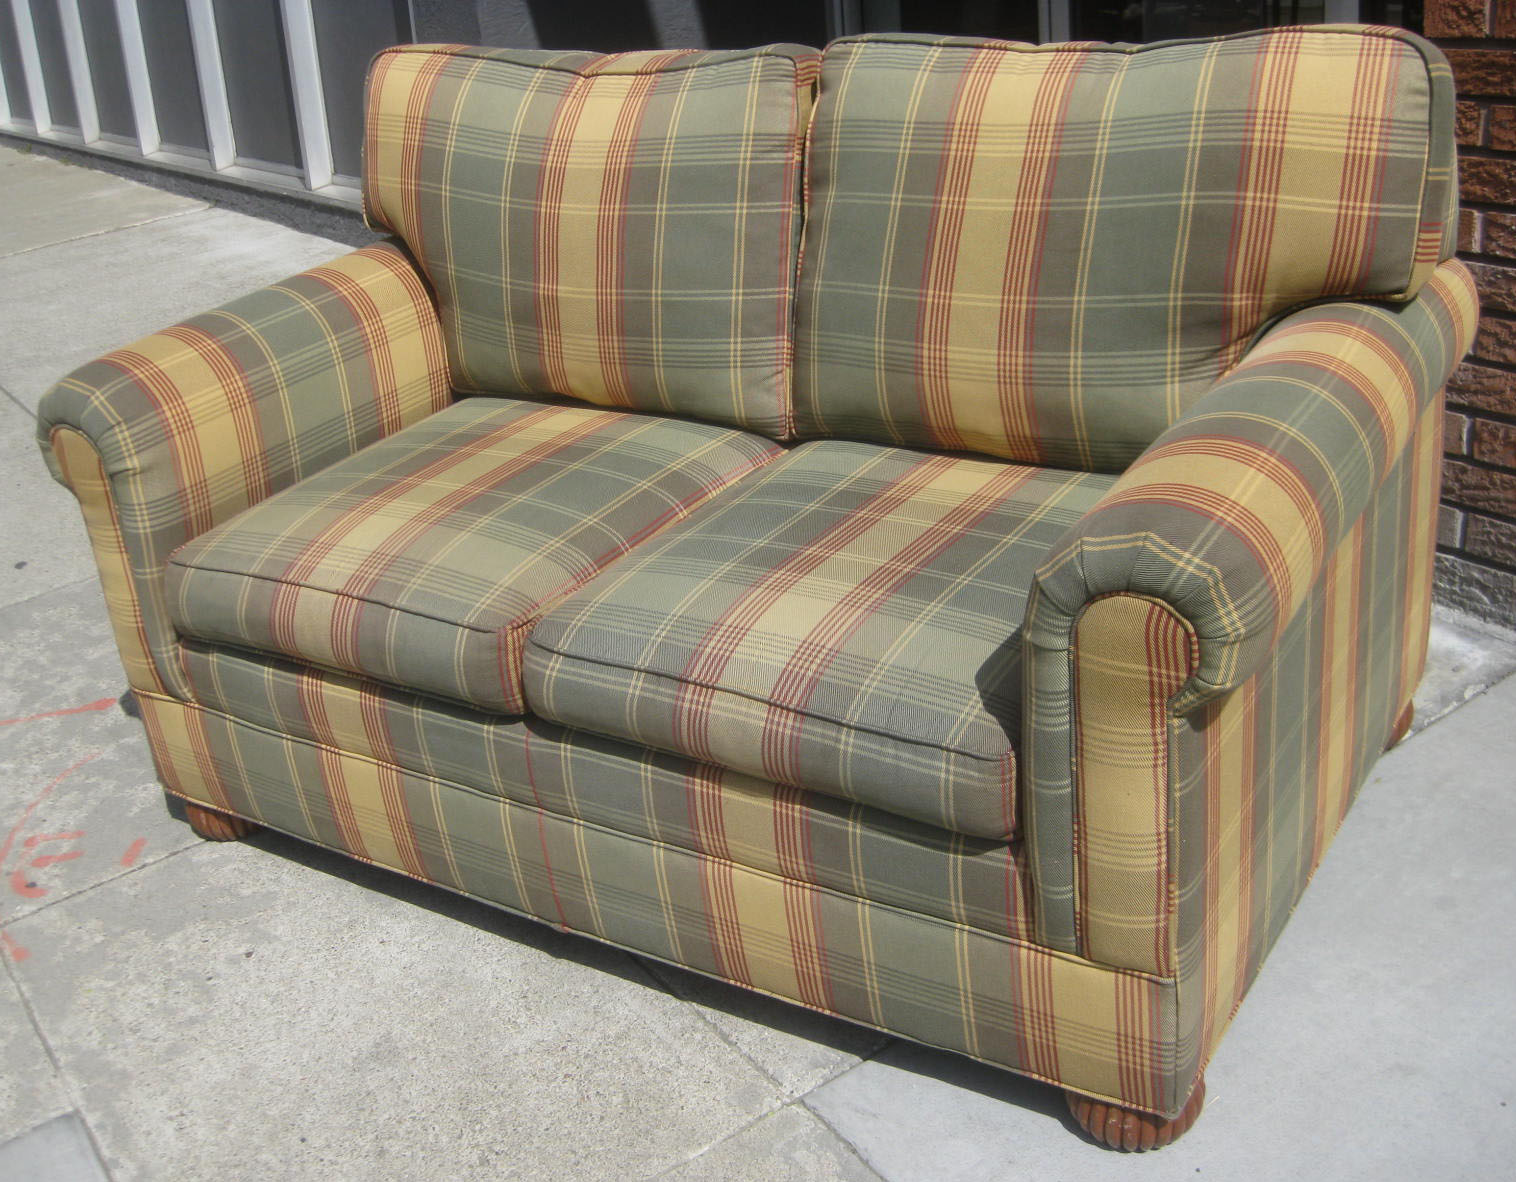 Uhuru Furniture Collectibles Sold Plaid Loveseat 90